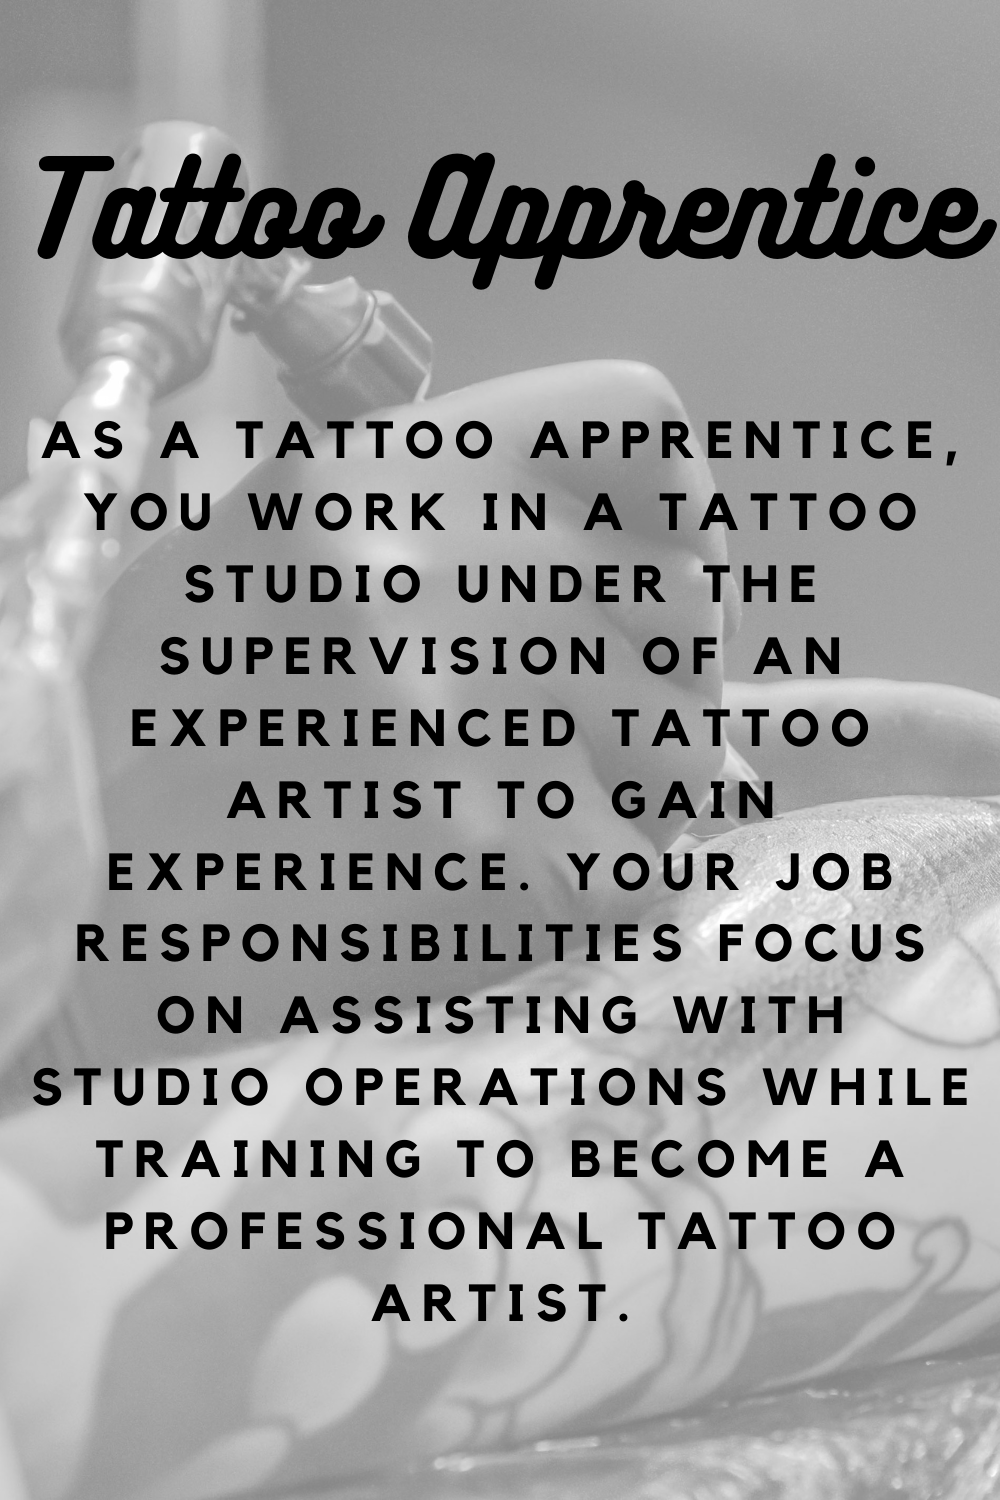 What is a tattoo apprenticeship